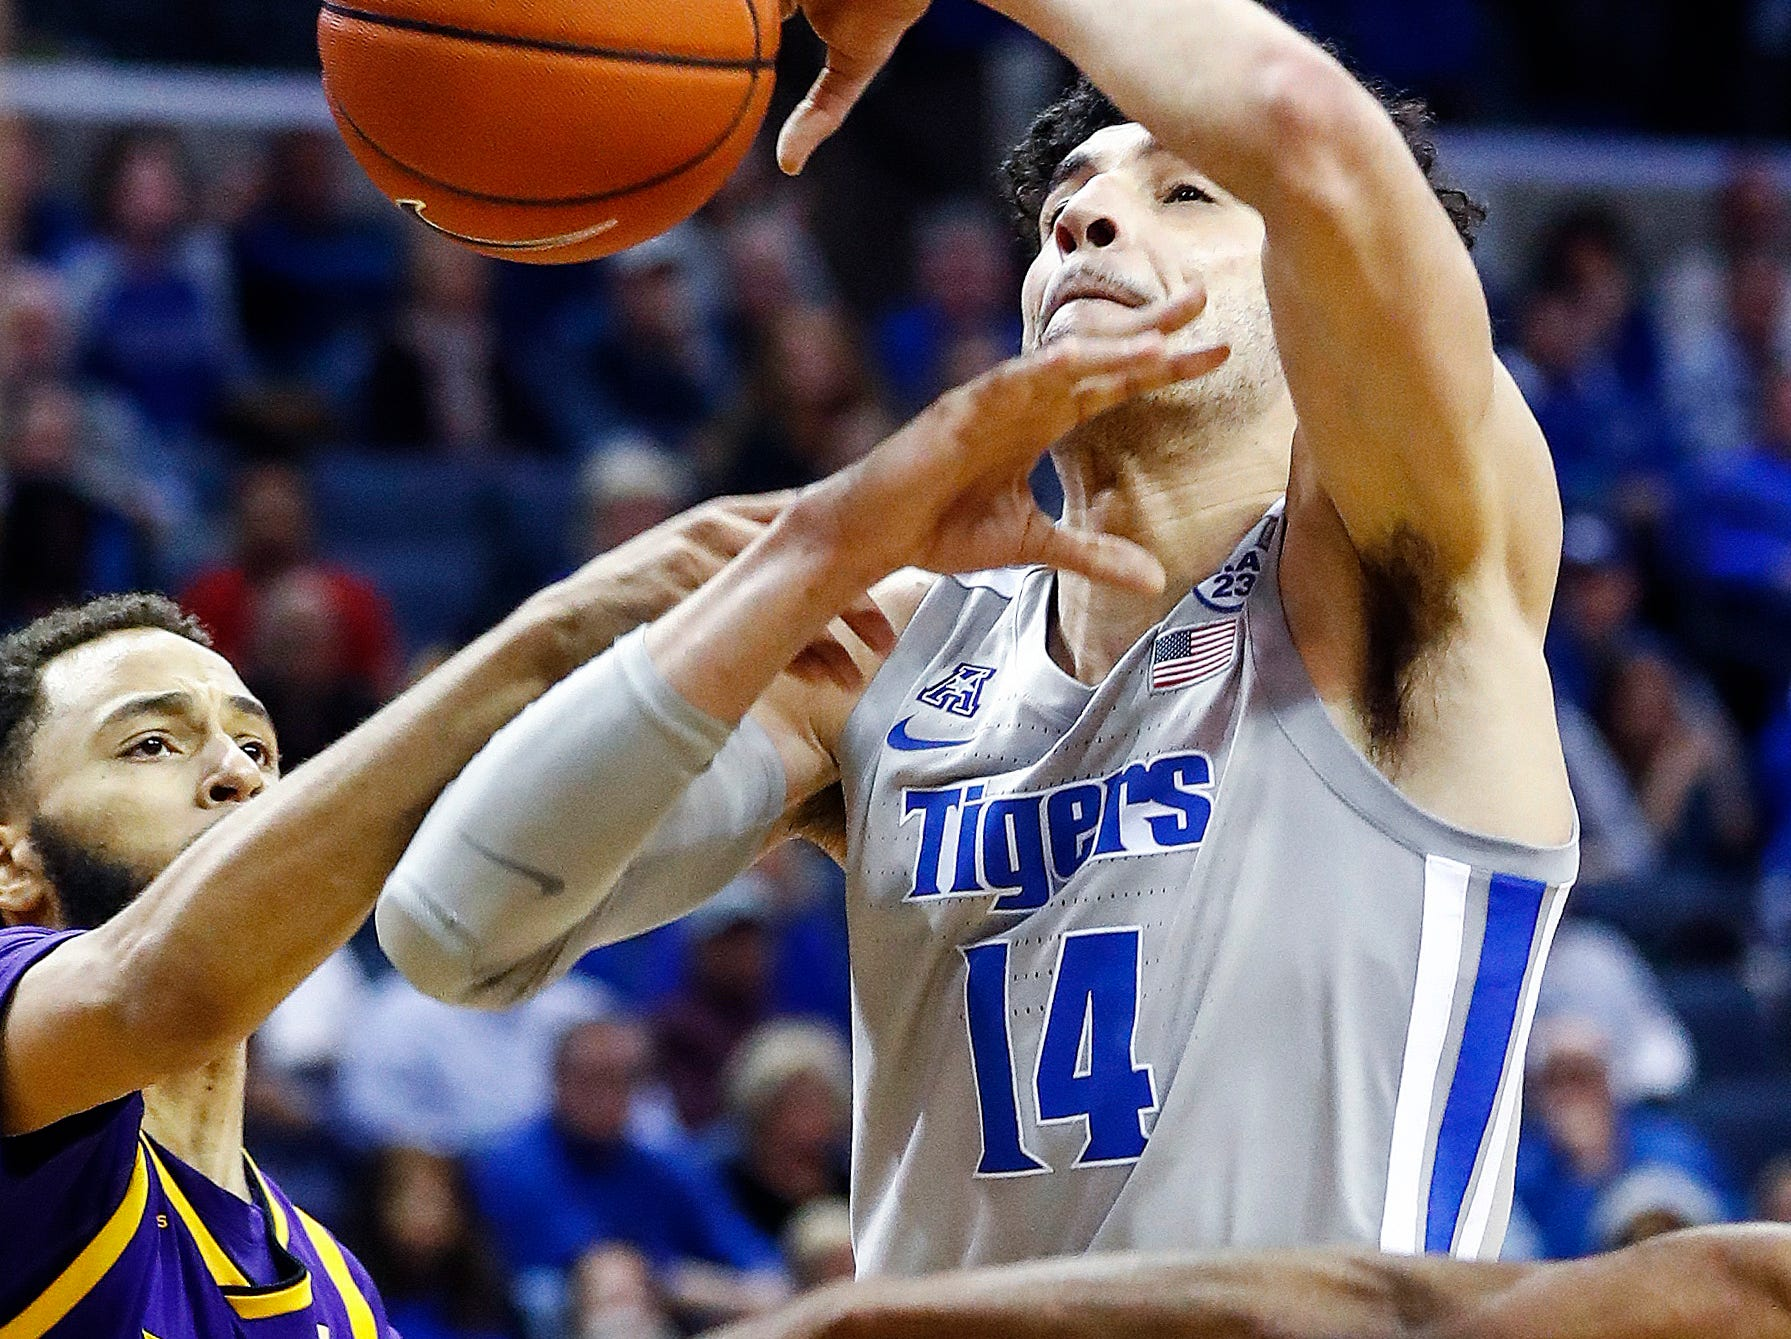 Memphis forward Isaiah Maurice (right) is fouled while driving the lane against the ECU defense during action at the FedExForum, Thursday, January 10, 2019.